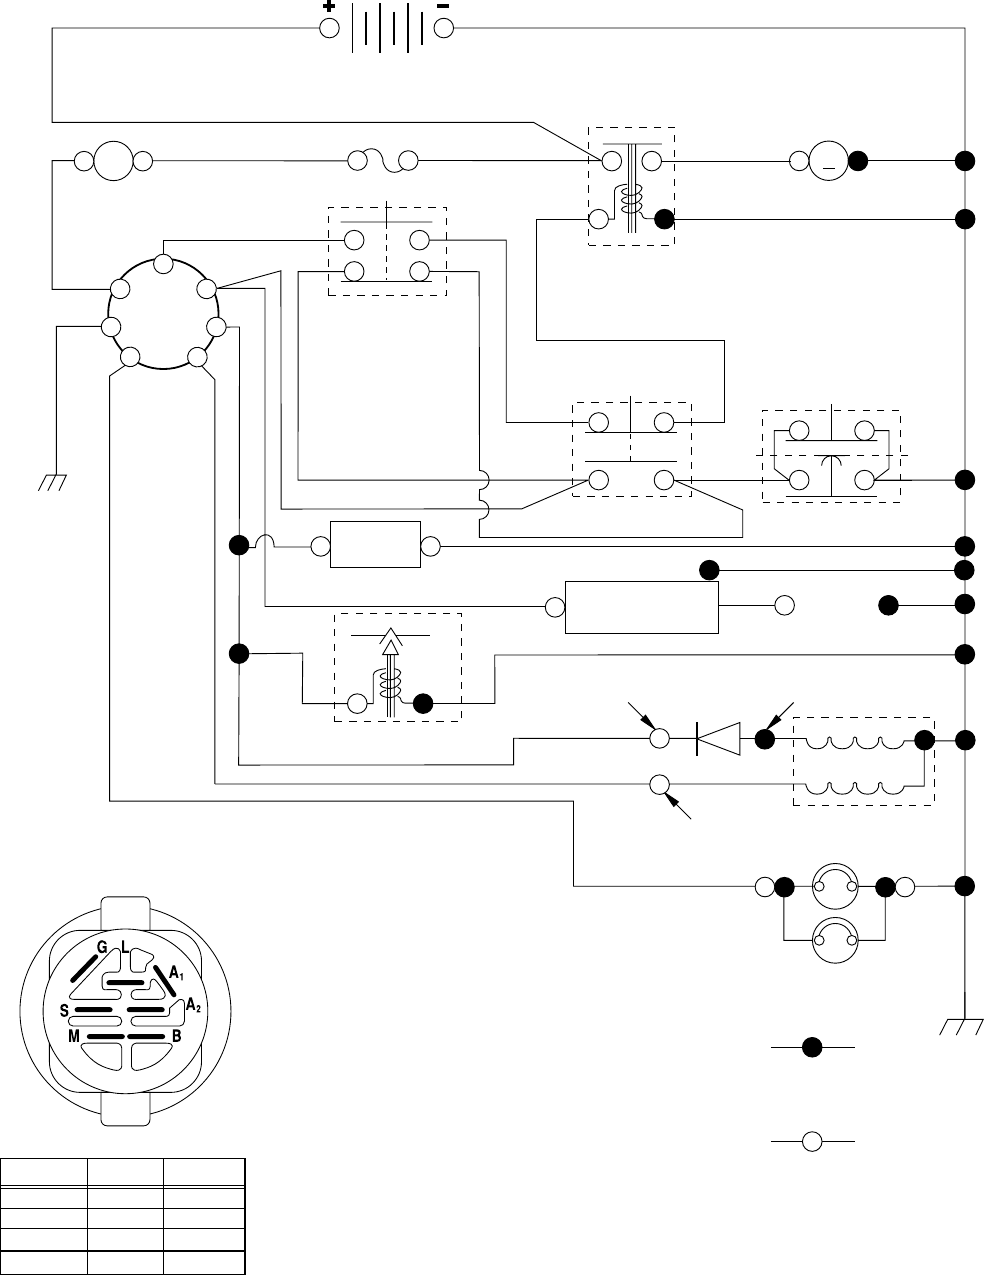 Wiring Diagram 125 Lth - Fusebox and Wiring Diagram electrical-device -  electrical-device.id-architects.itdiagram database - id-architects.it